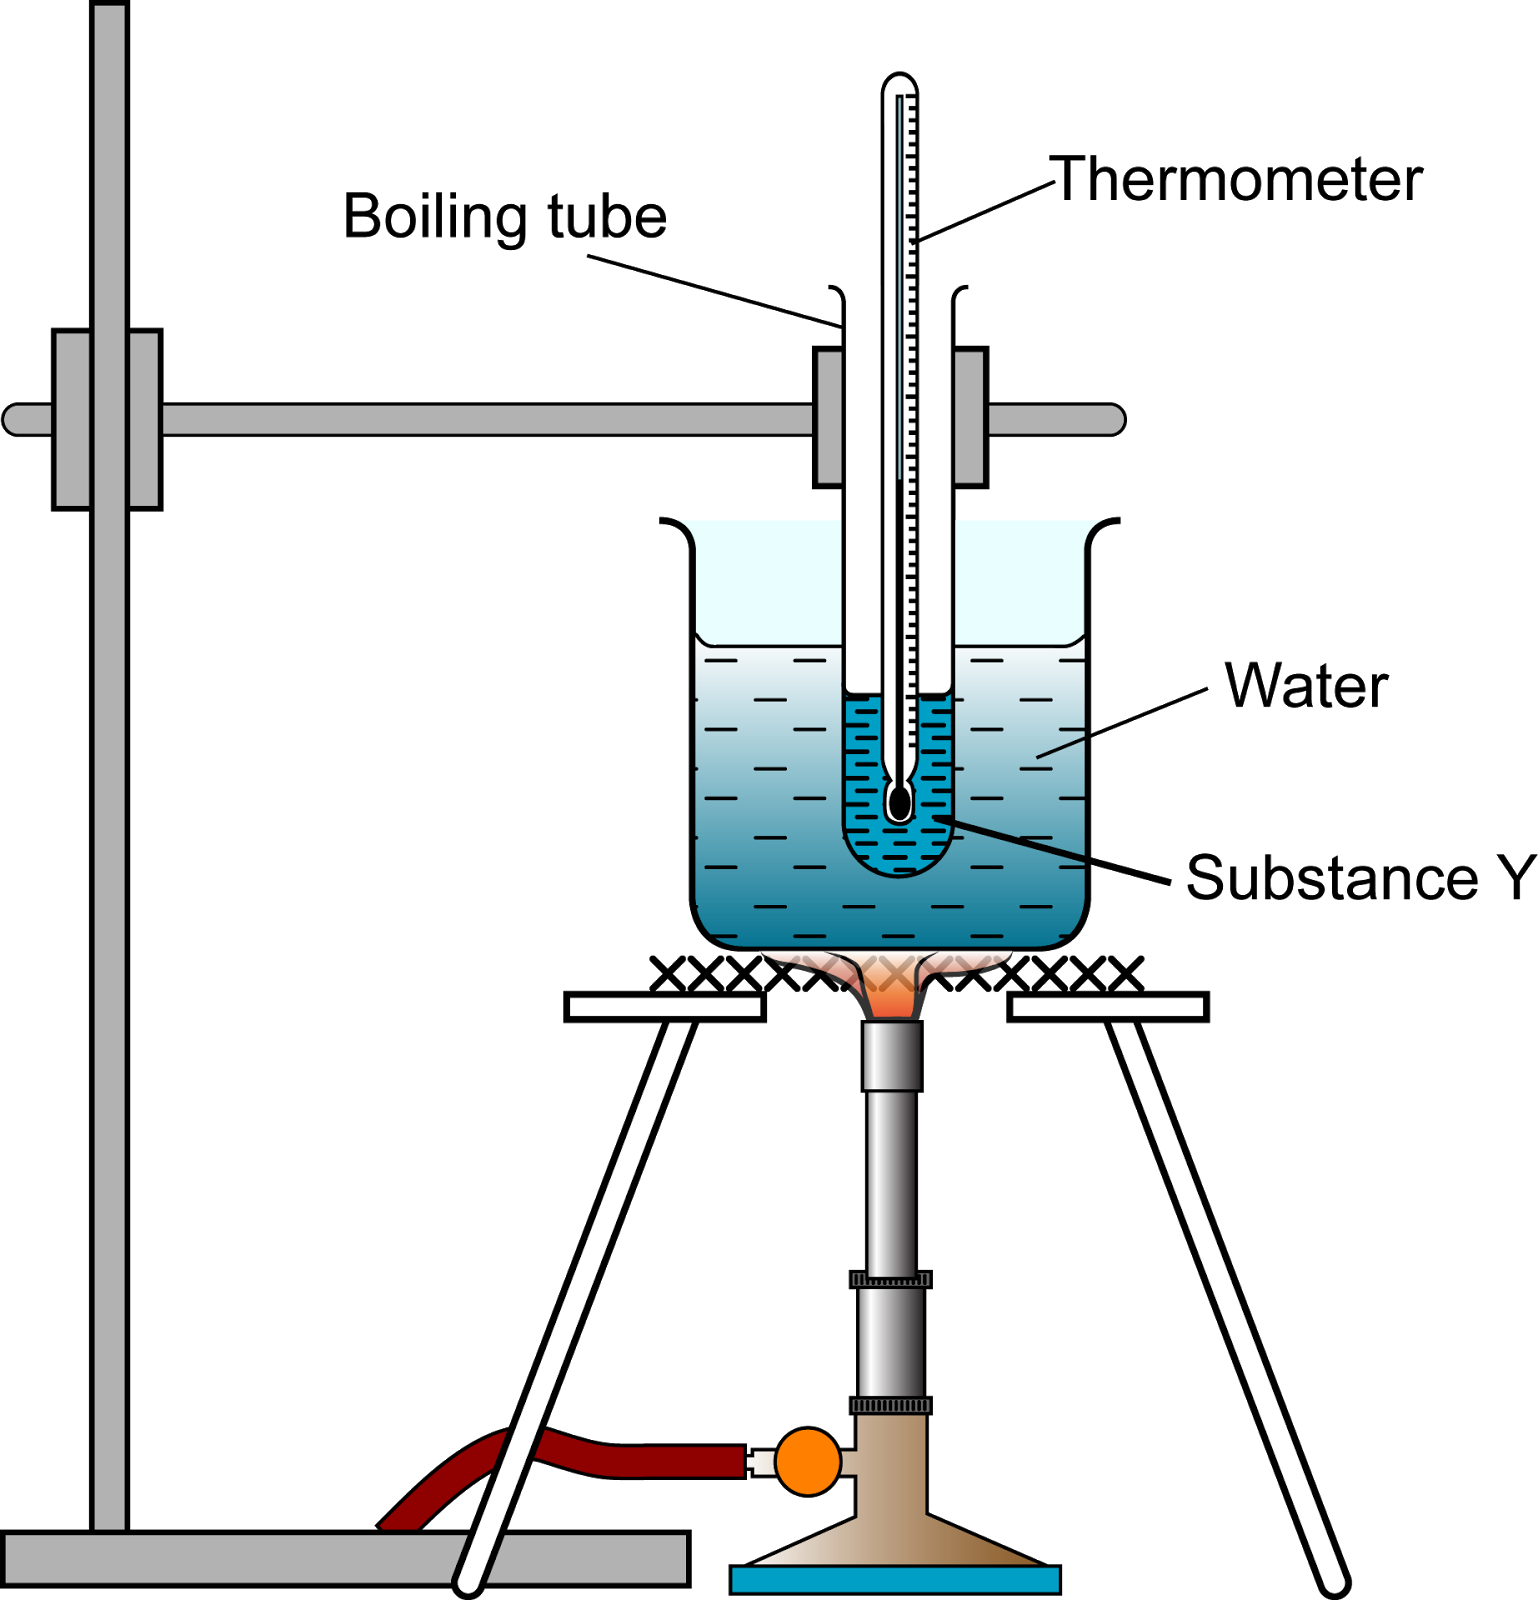 boiling point experiment Lab report boiling point and melting point 2353 words | 10 pages repchemistry i - laboratory exercise manual laboratory exercise 10: melting point and boiling point determination this is a traditional lab.